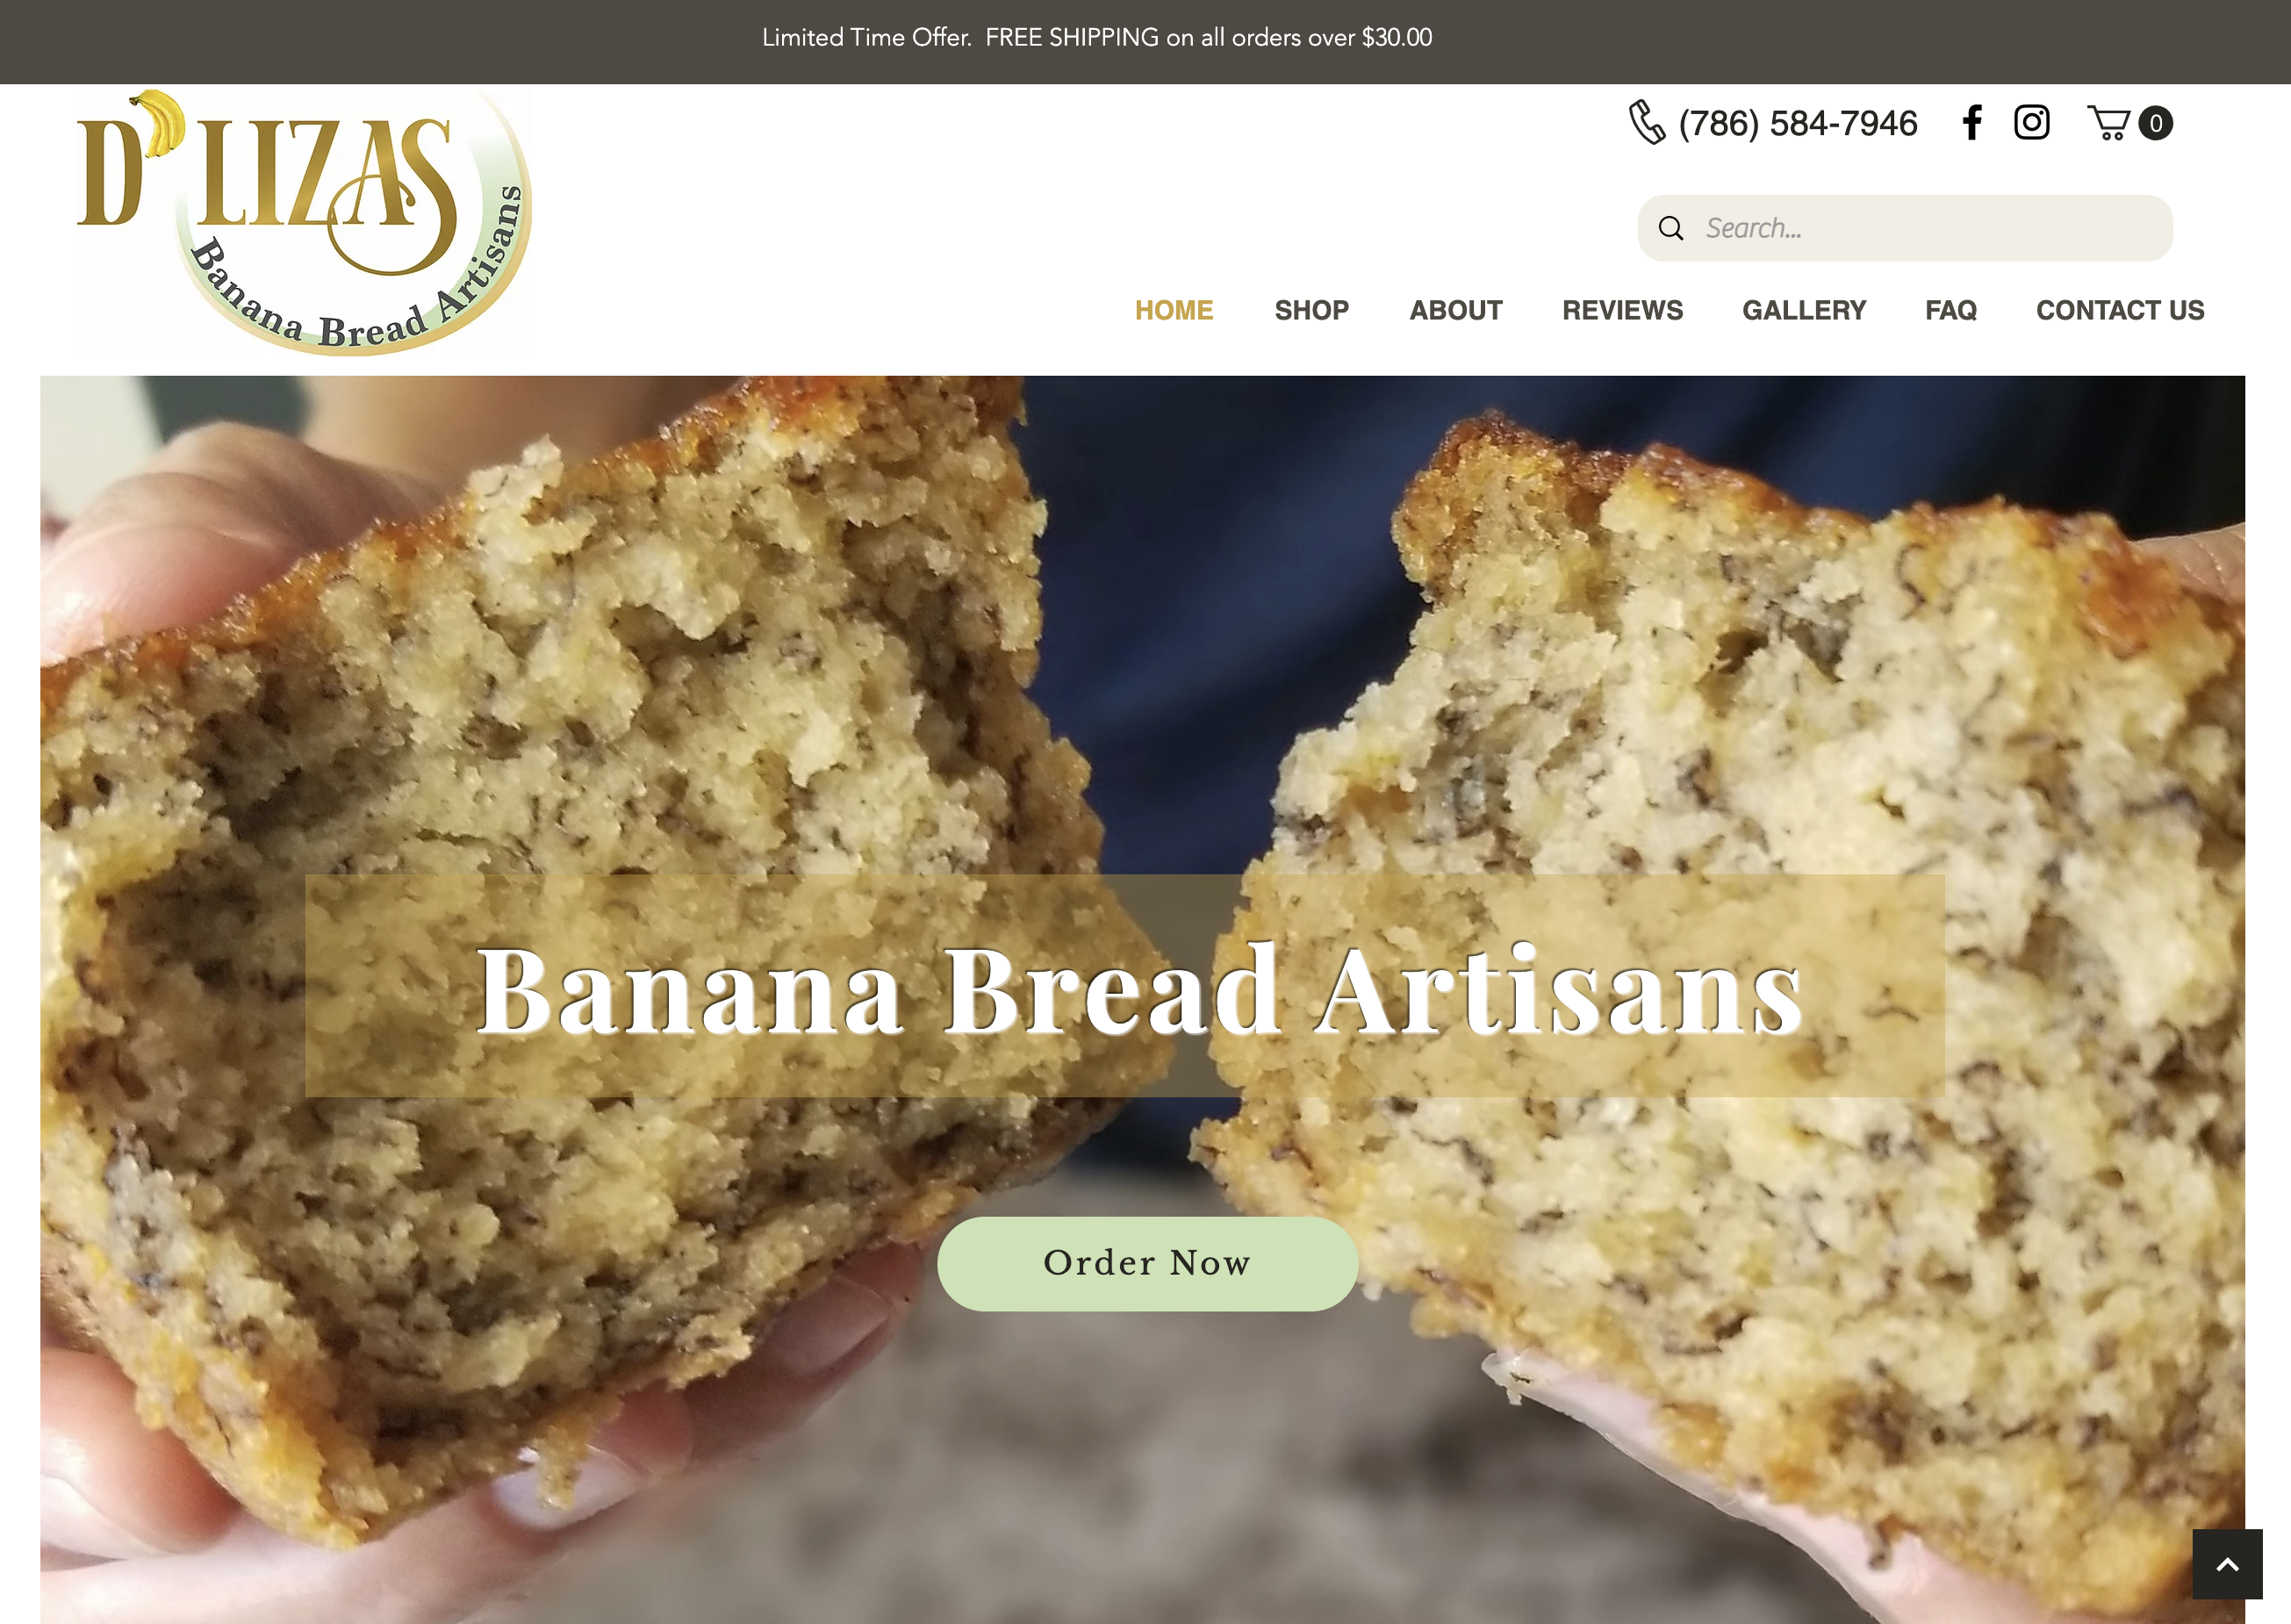 Banana Bread Bakery in Miami